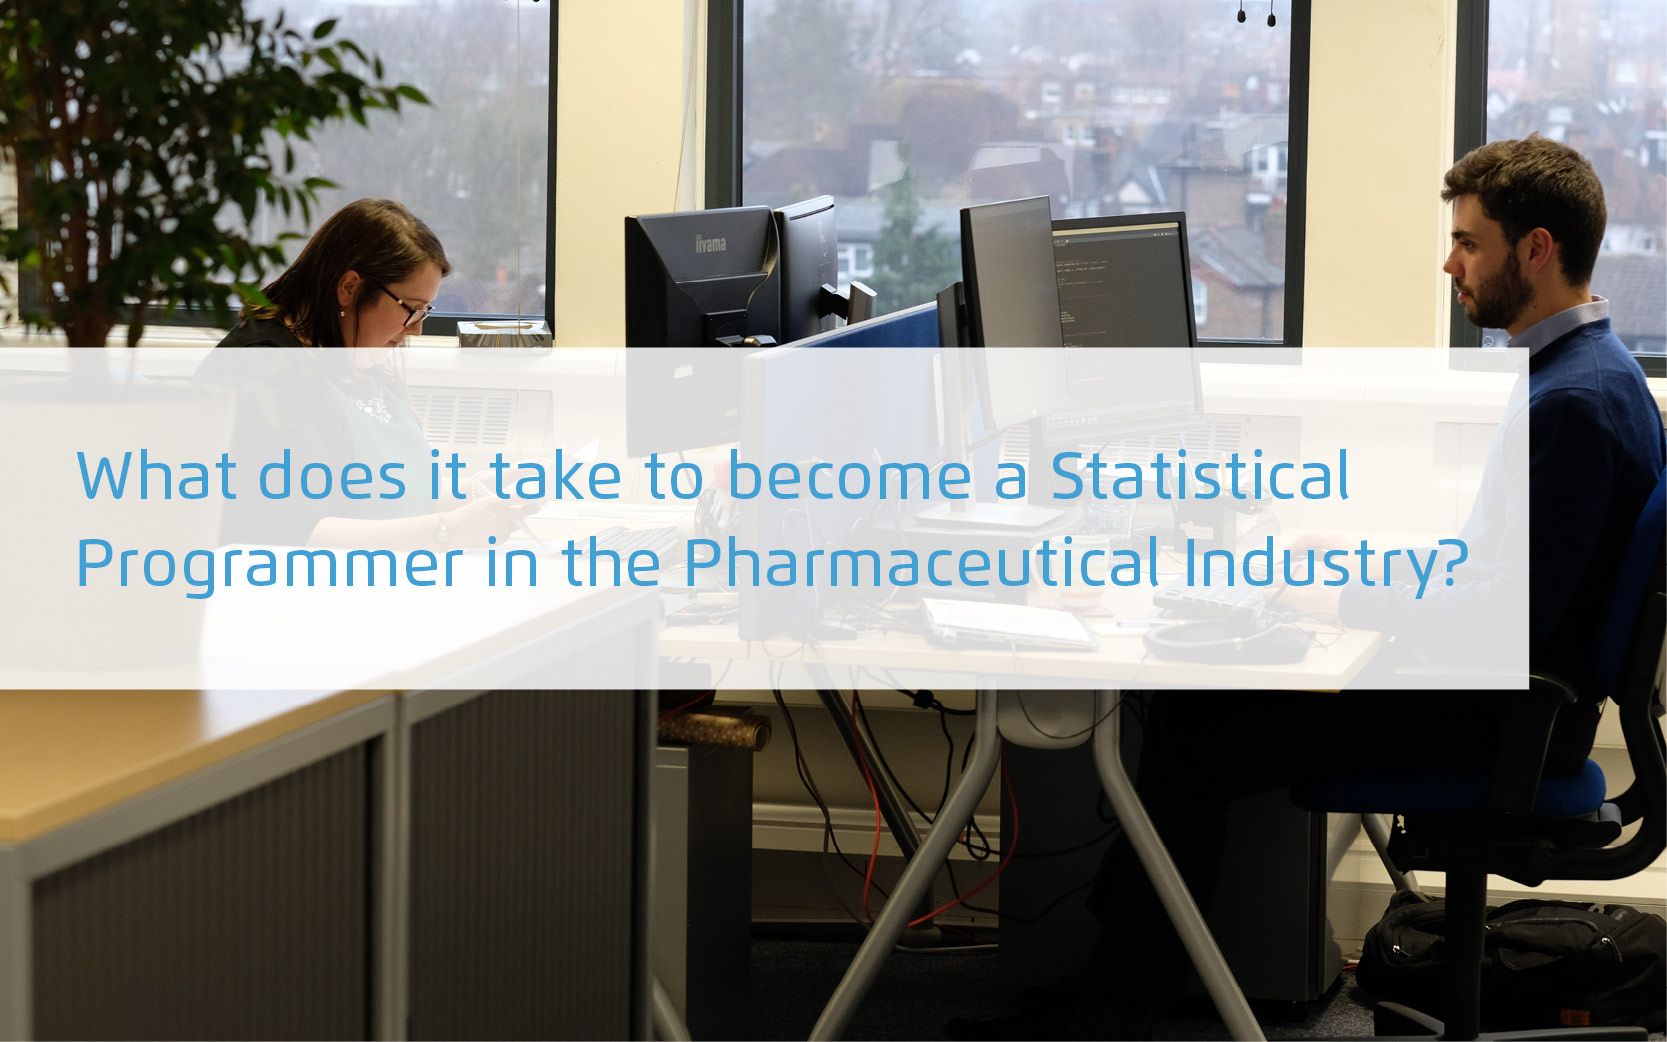 What does it take to become a statistical programmer in the pharmaceutical industry?